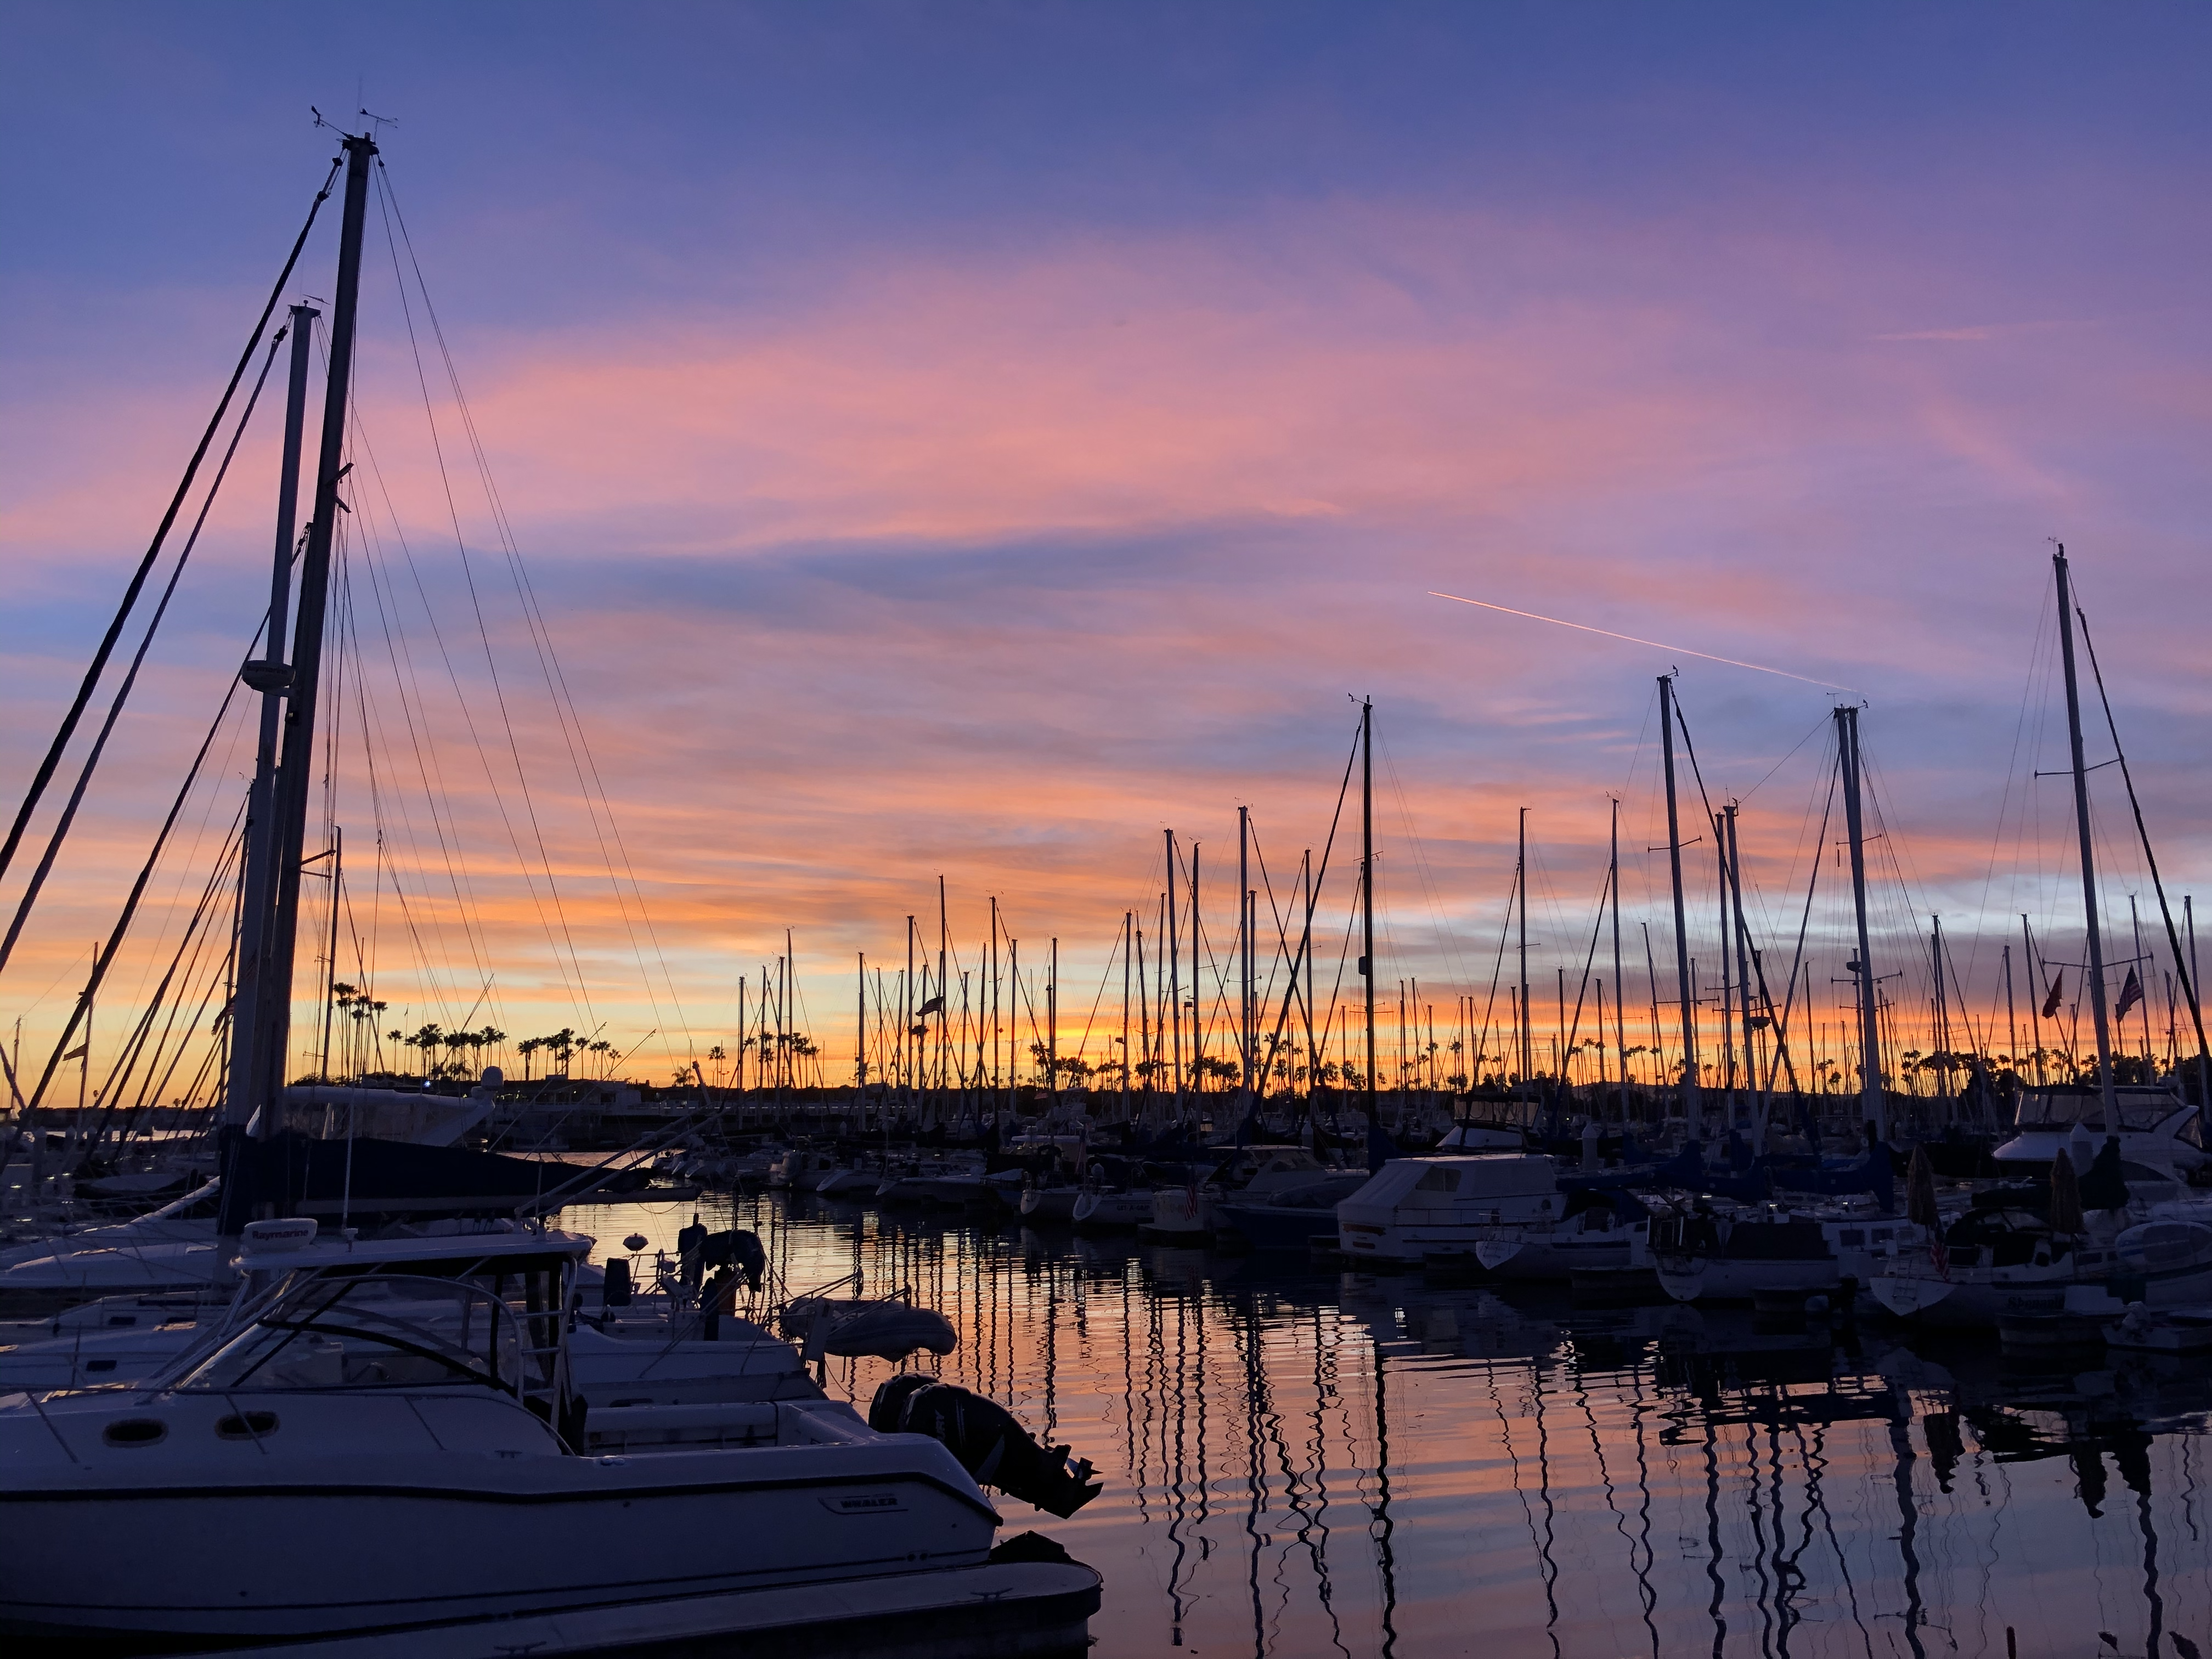 A fantastic sunset from the Long Beach marina. A perfect backdrop for the much-needed walk to Chipotle.